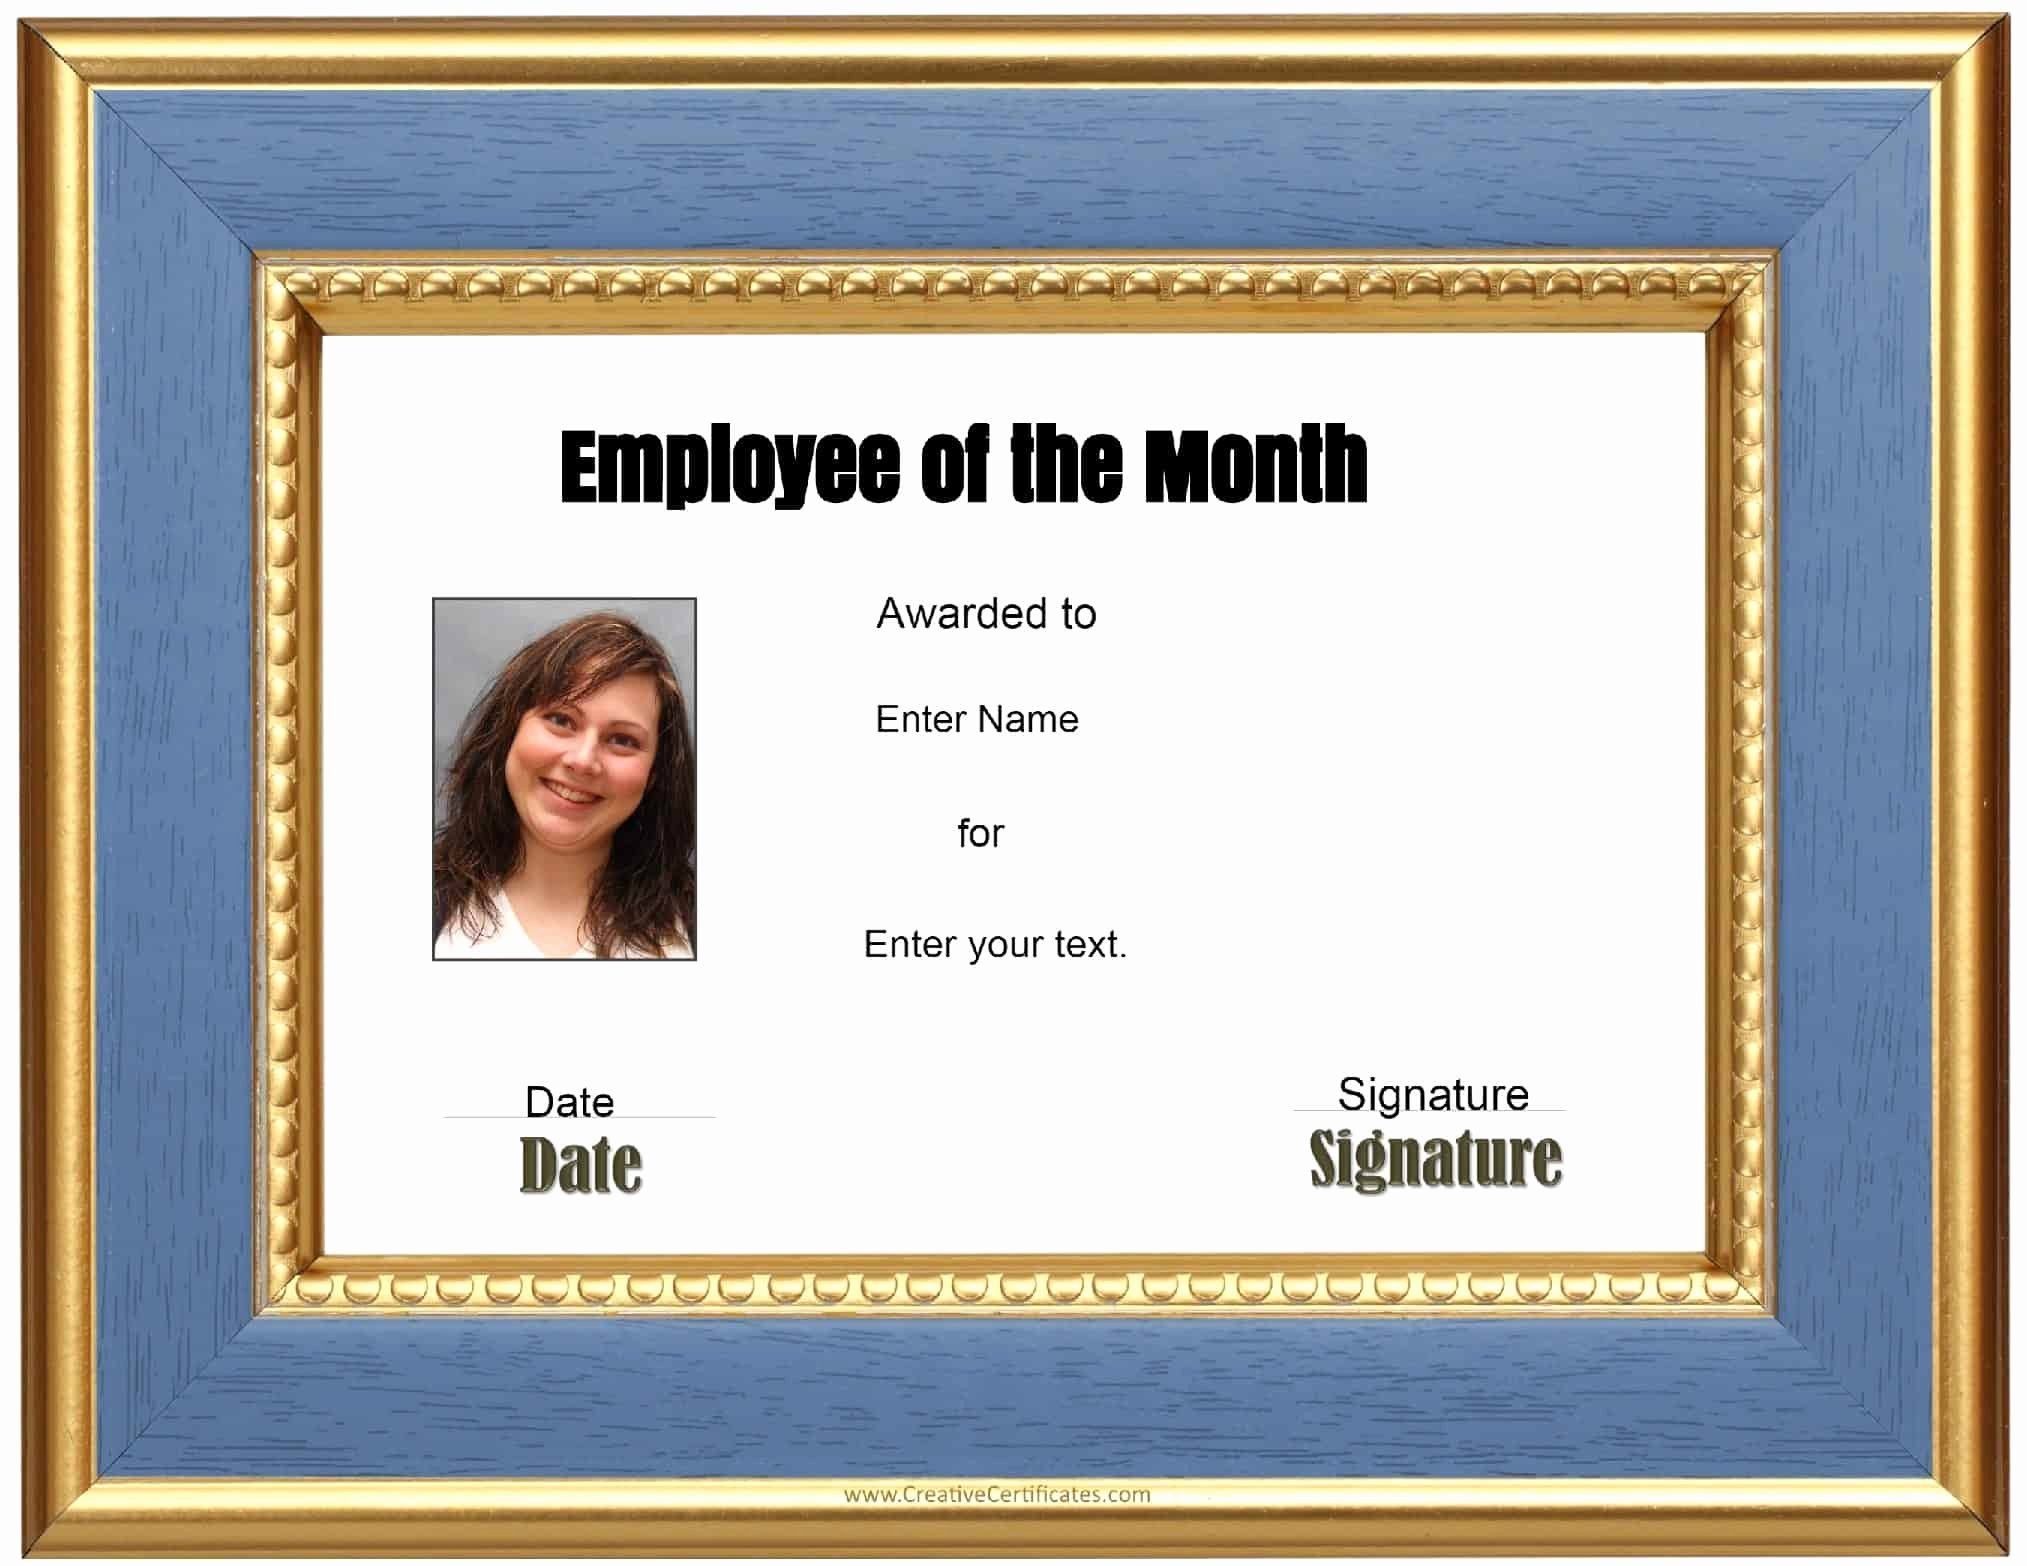 Employee Of the Month Awards Templates Elegant Employee Of the Month Certificate Template Driverlayer